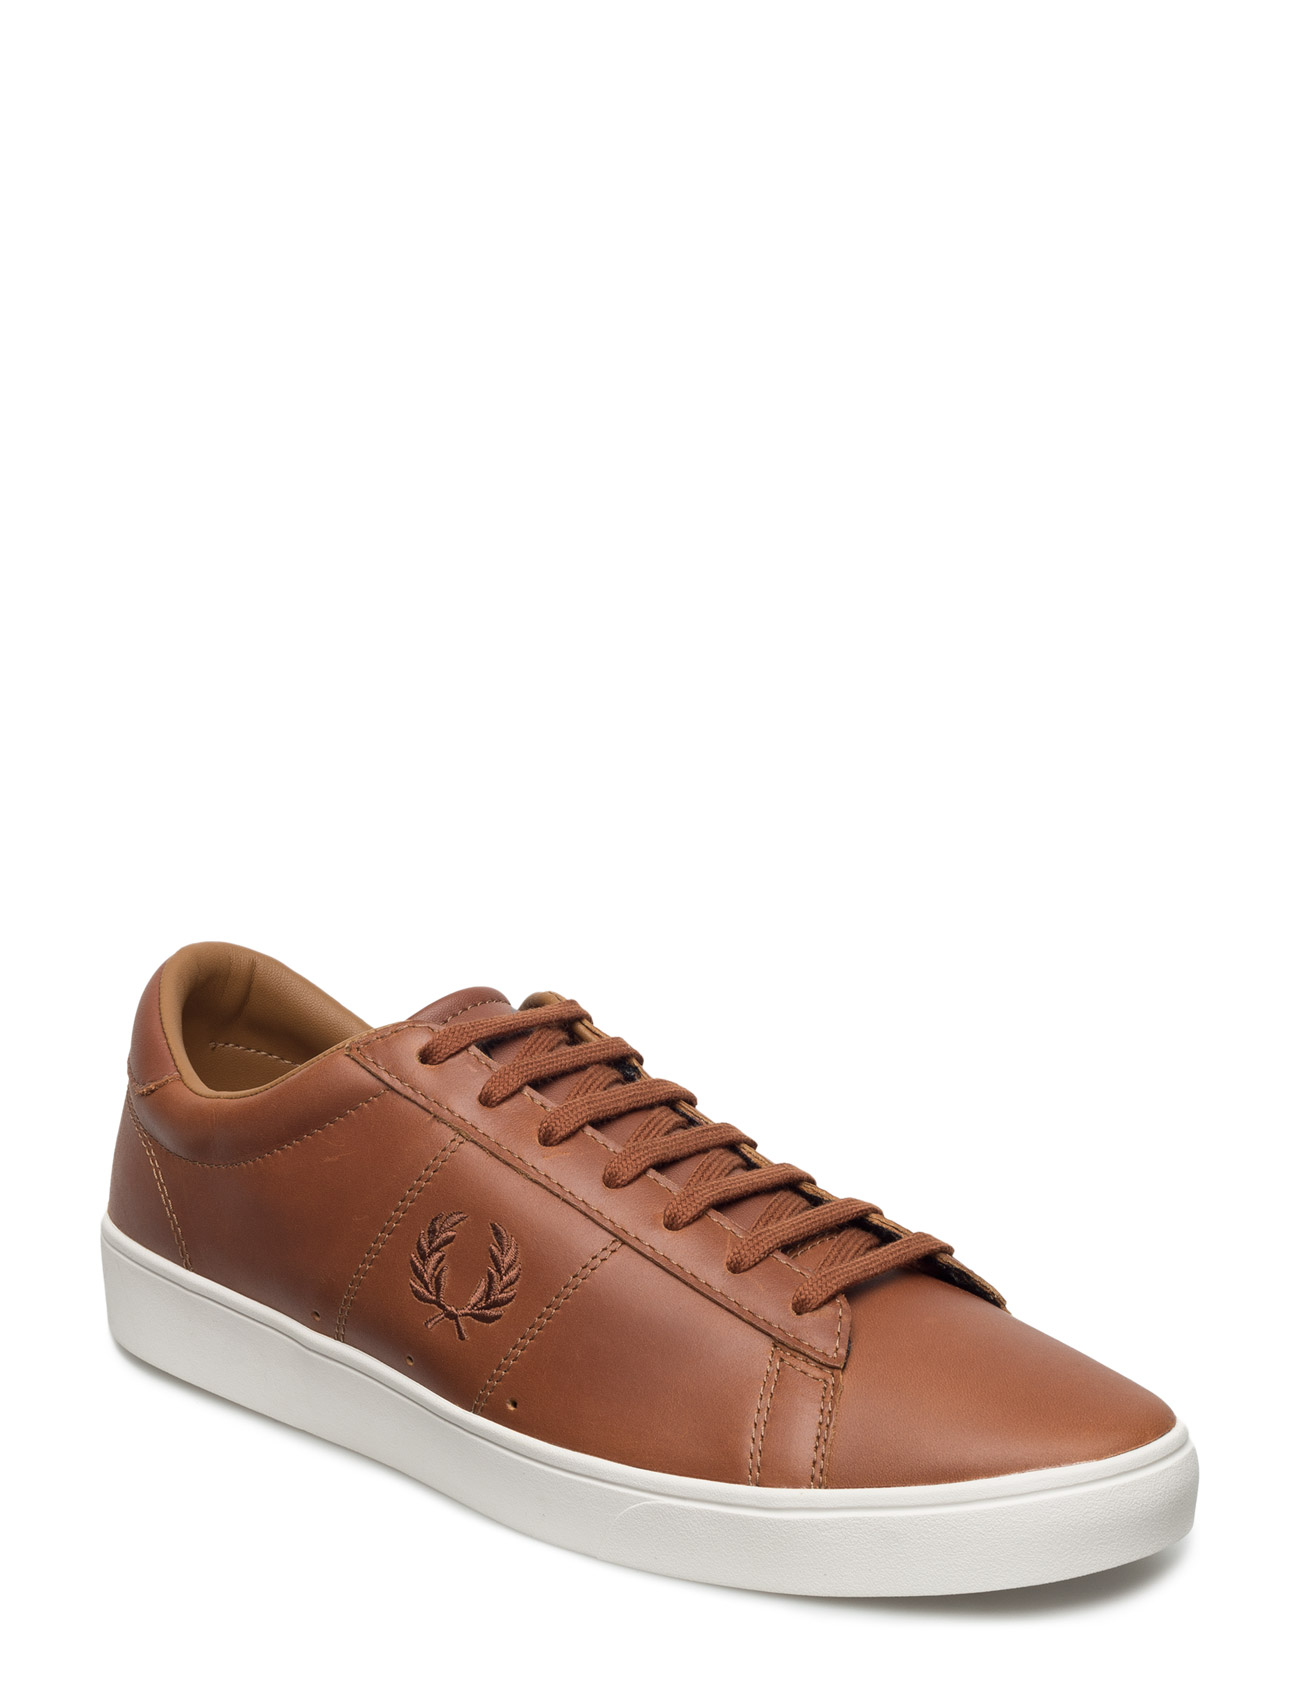 Spencer Waxed Lth Fred Perry Sneakers til Herrer i Tan